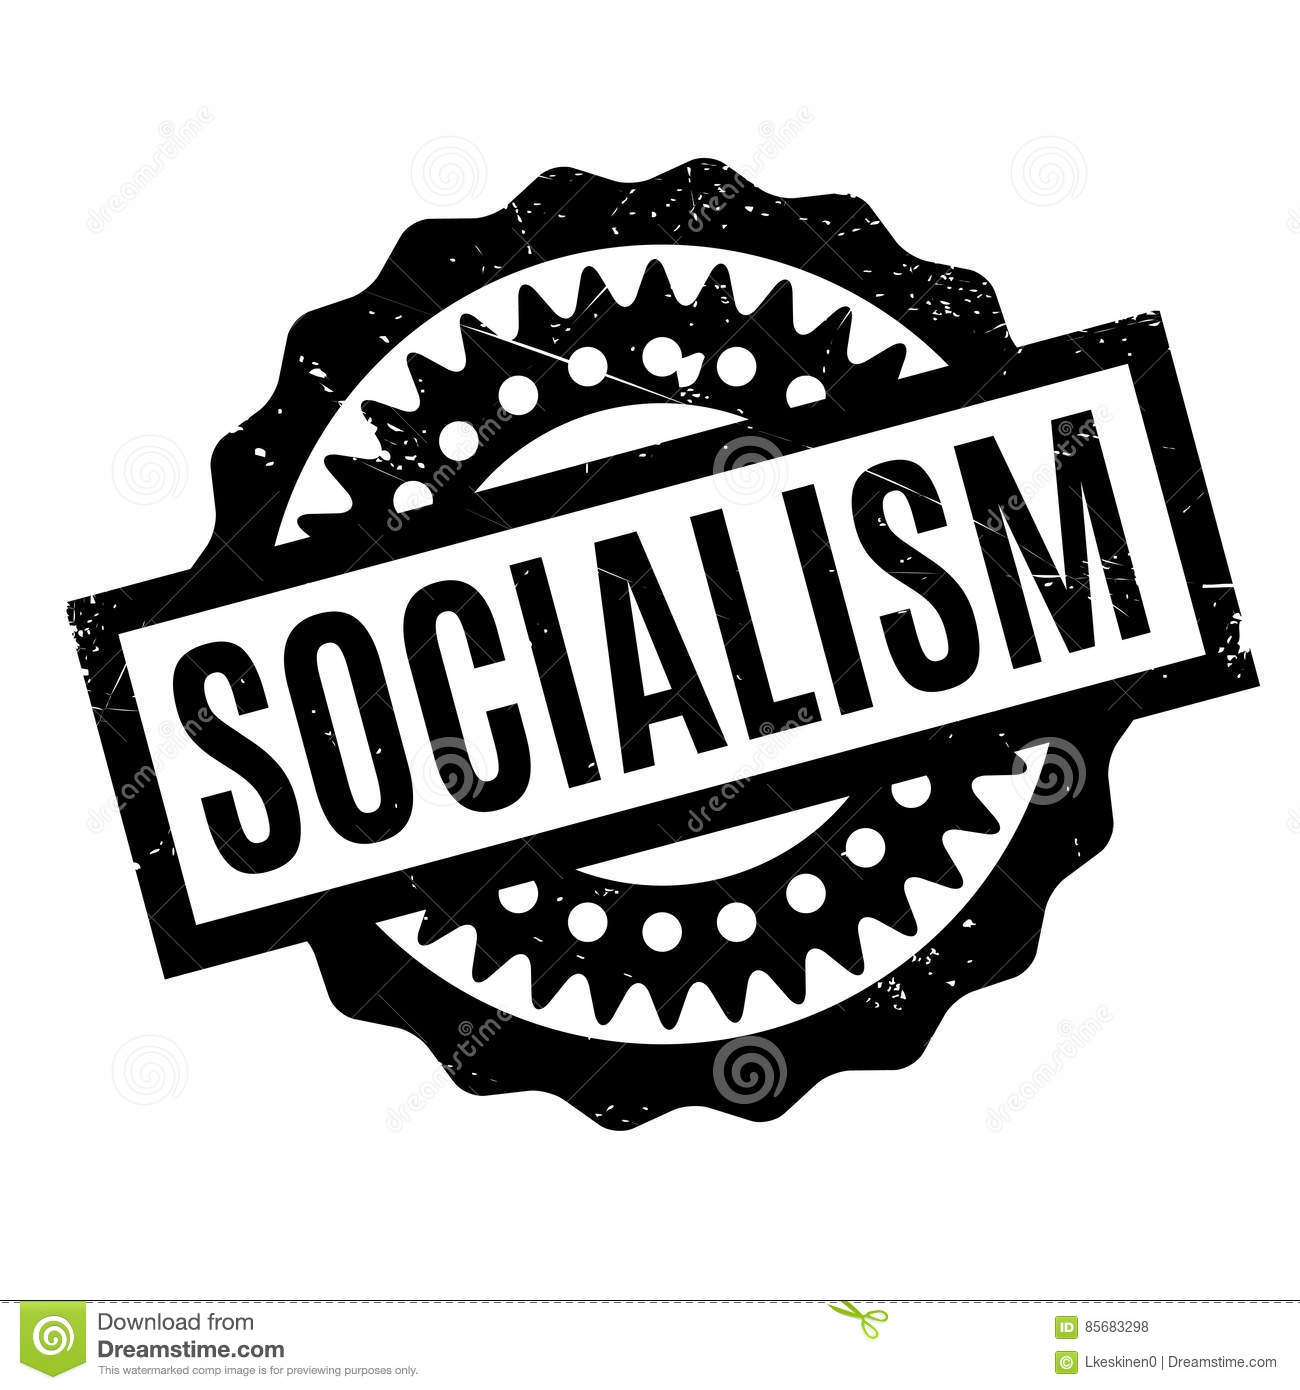 Socialism rubber stamp stock illustration illustration of header socialism rubber stamp header marxism buycottarizona Gallery